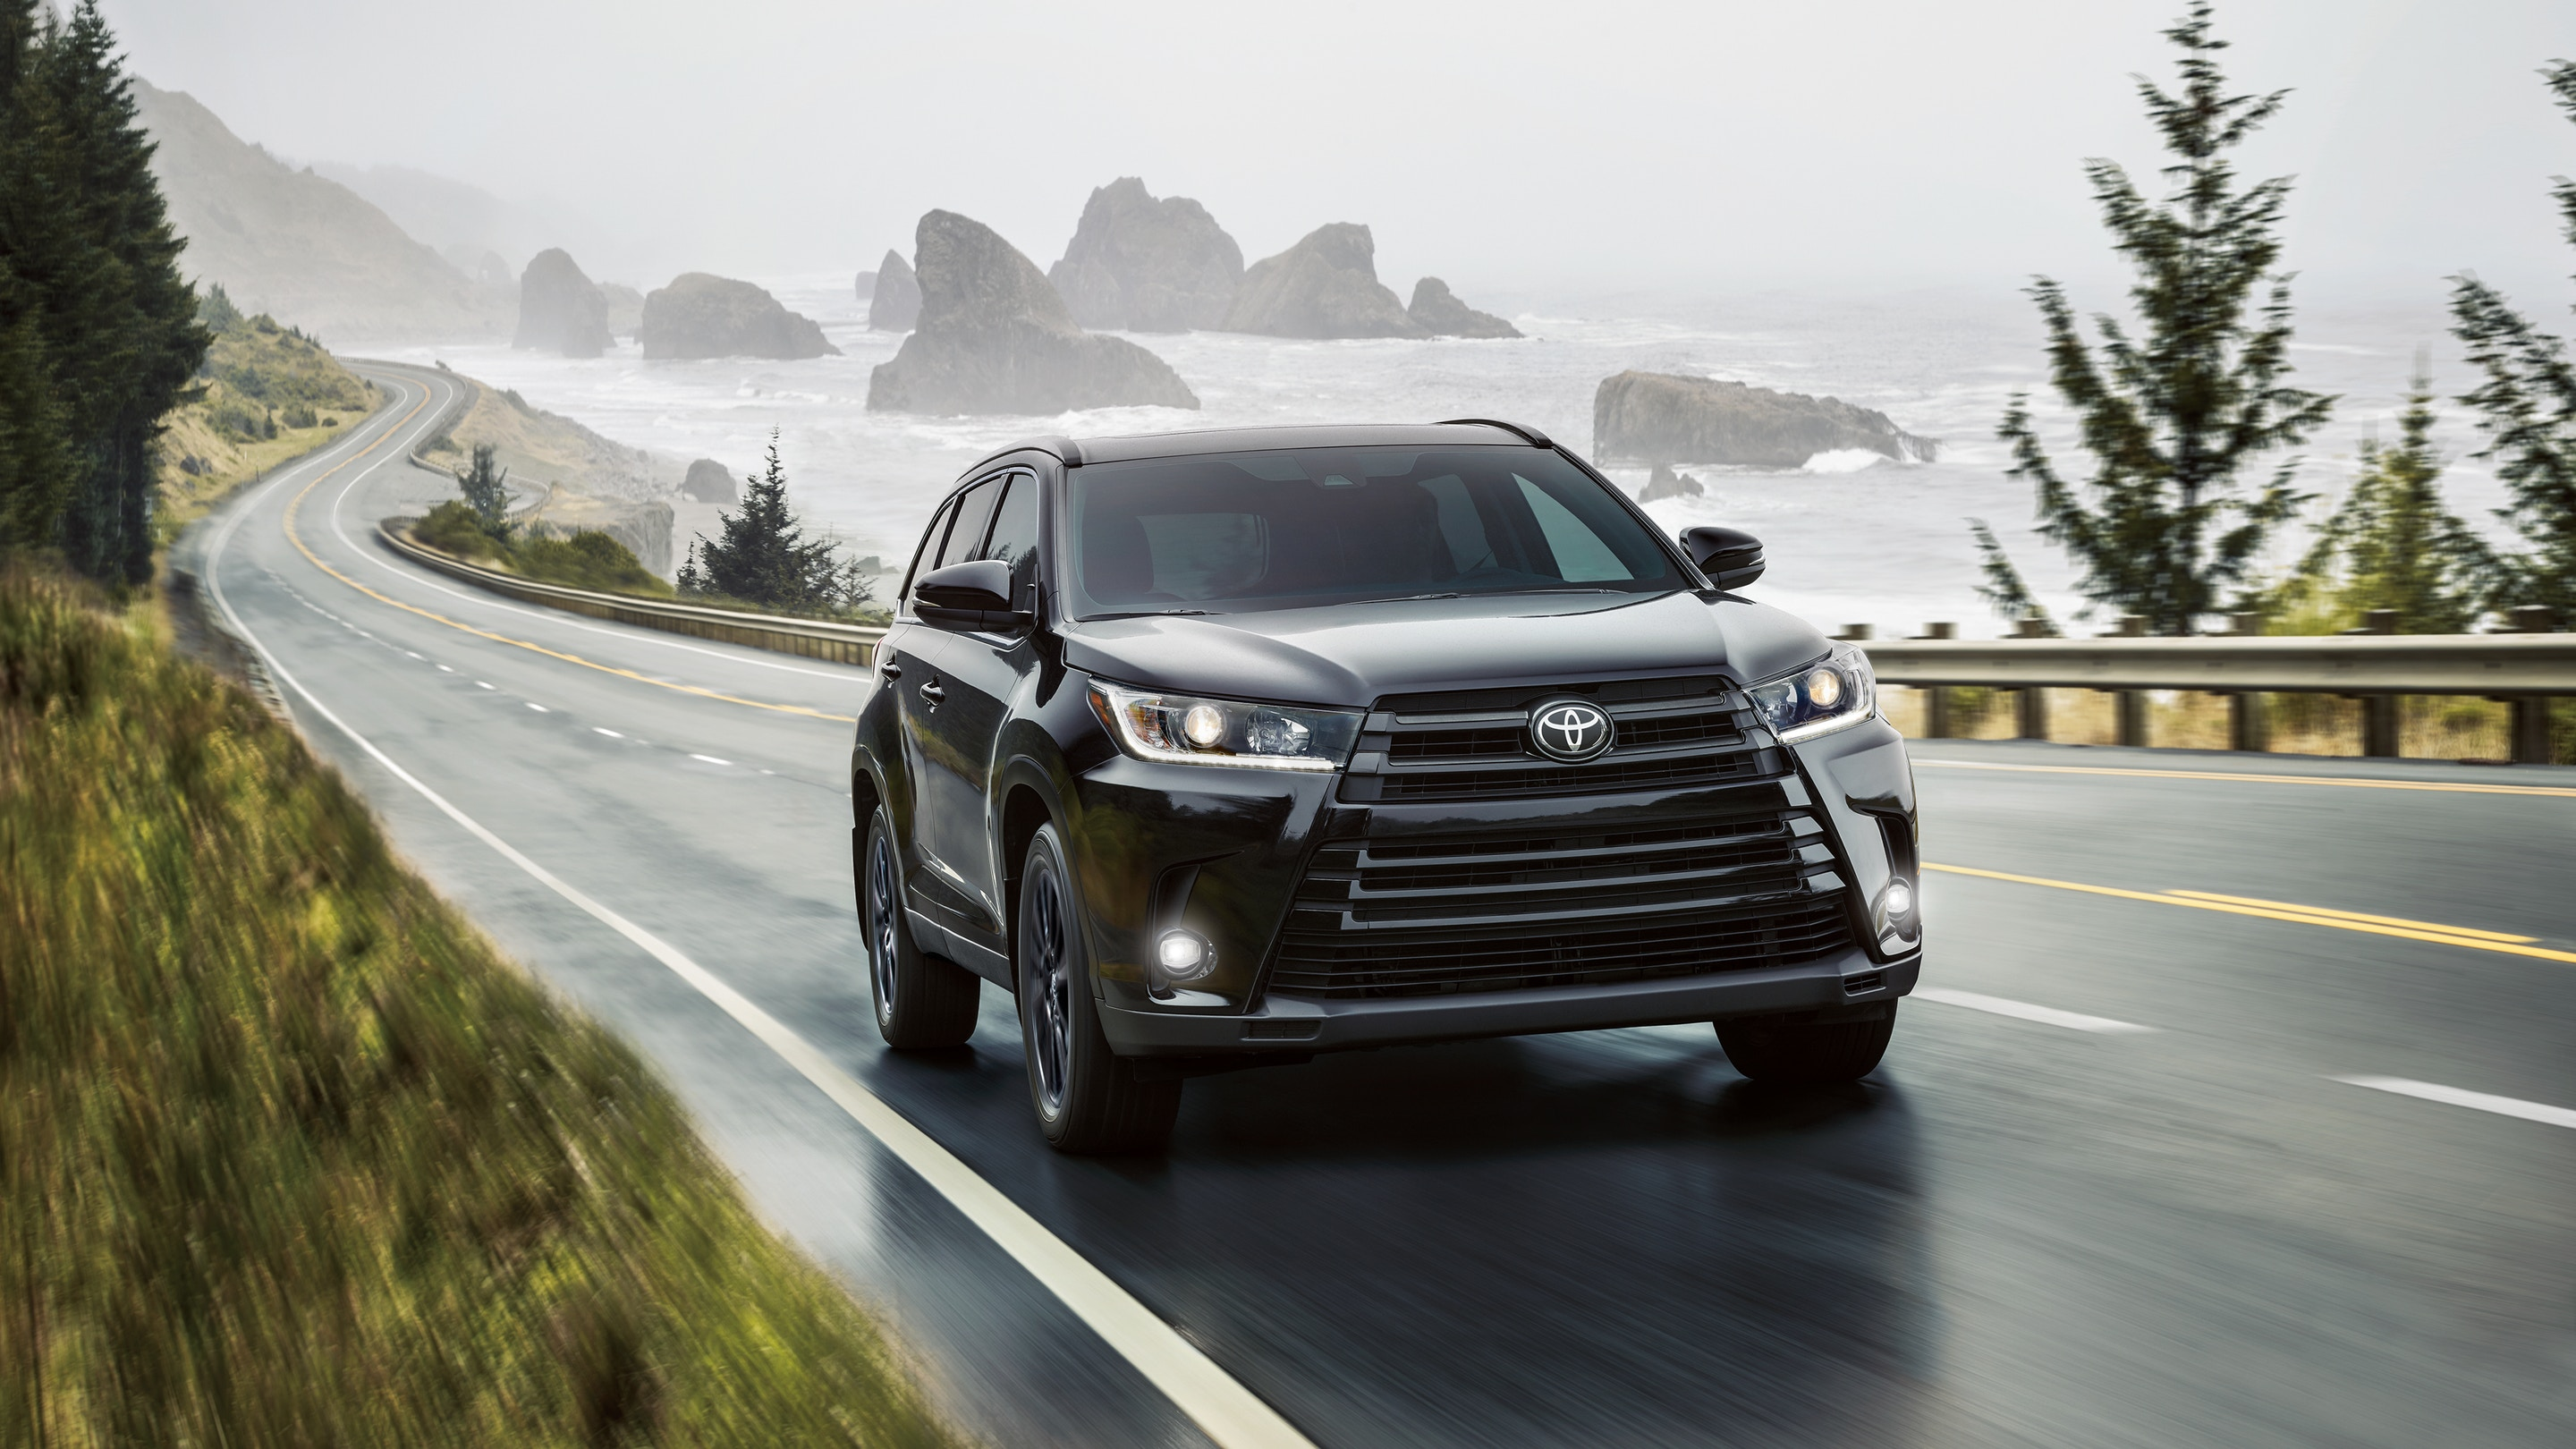 2019 Toyota Highlander Safety Features near San Jose, CA